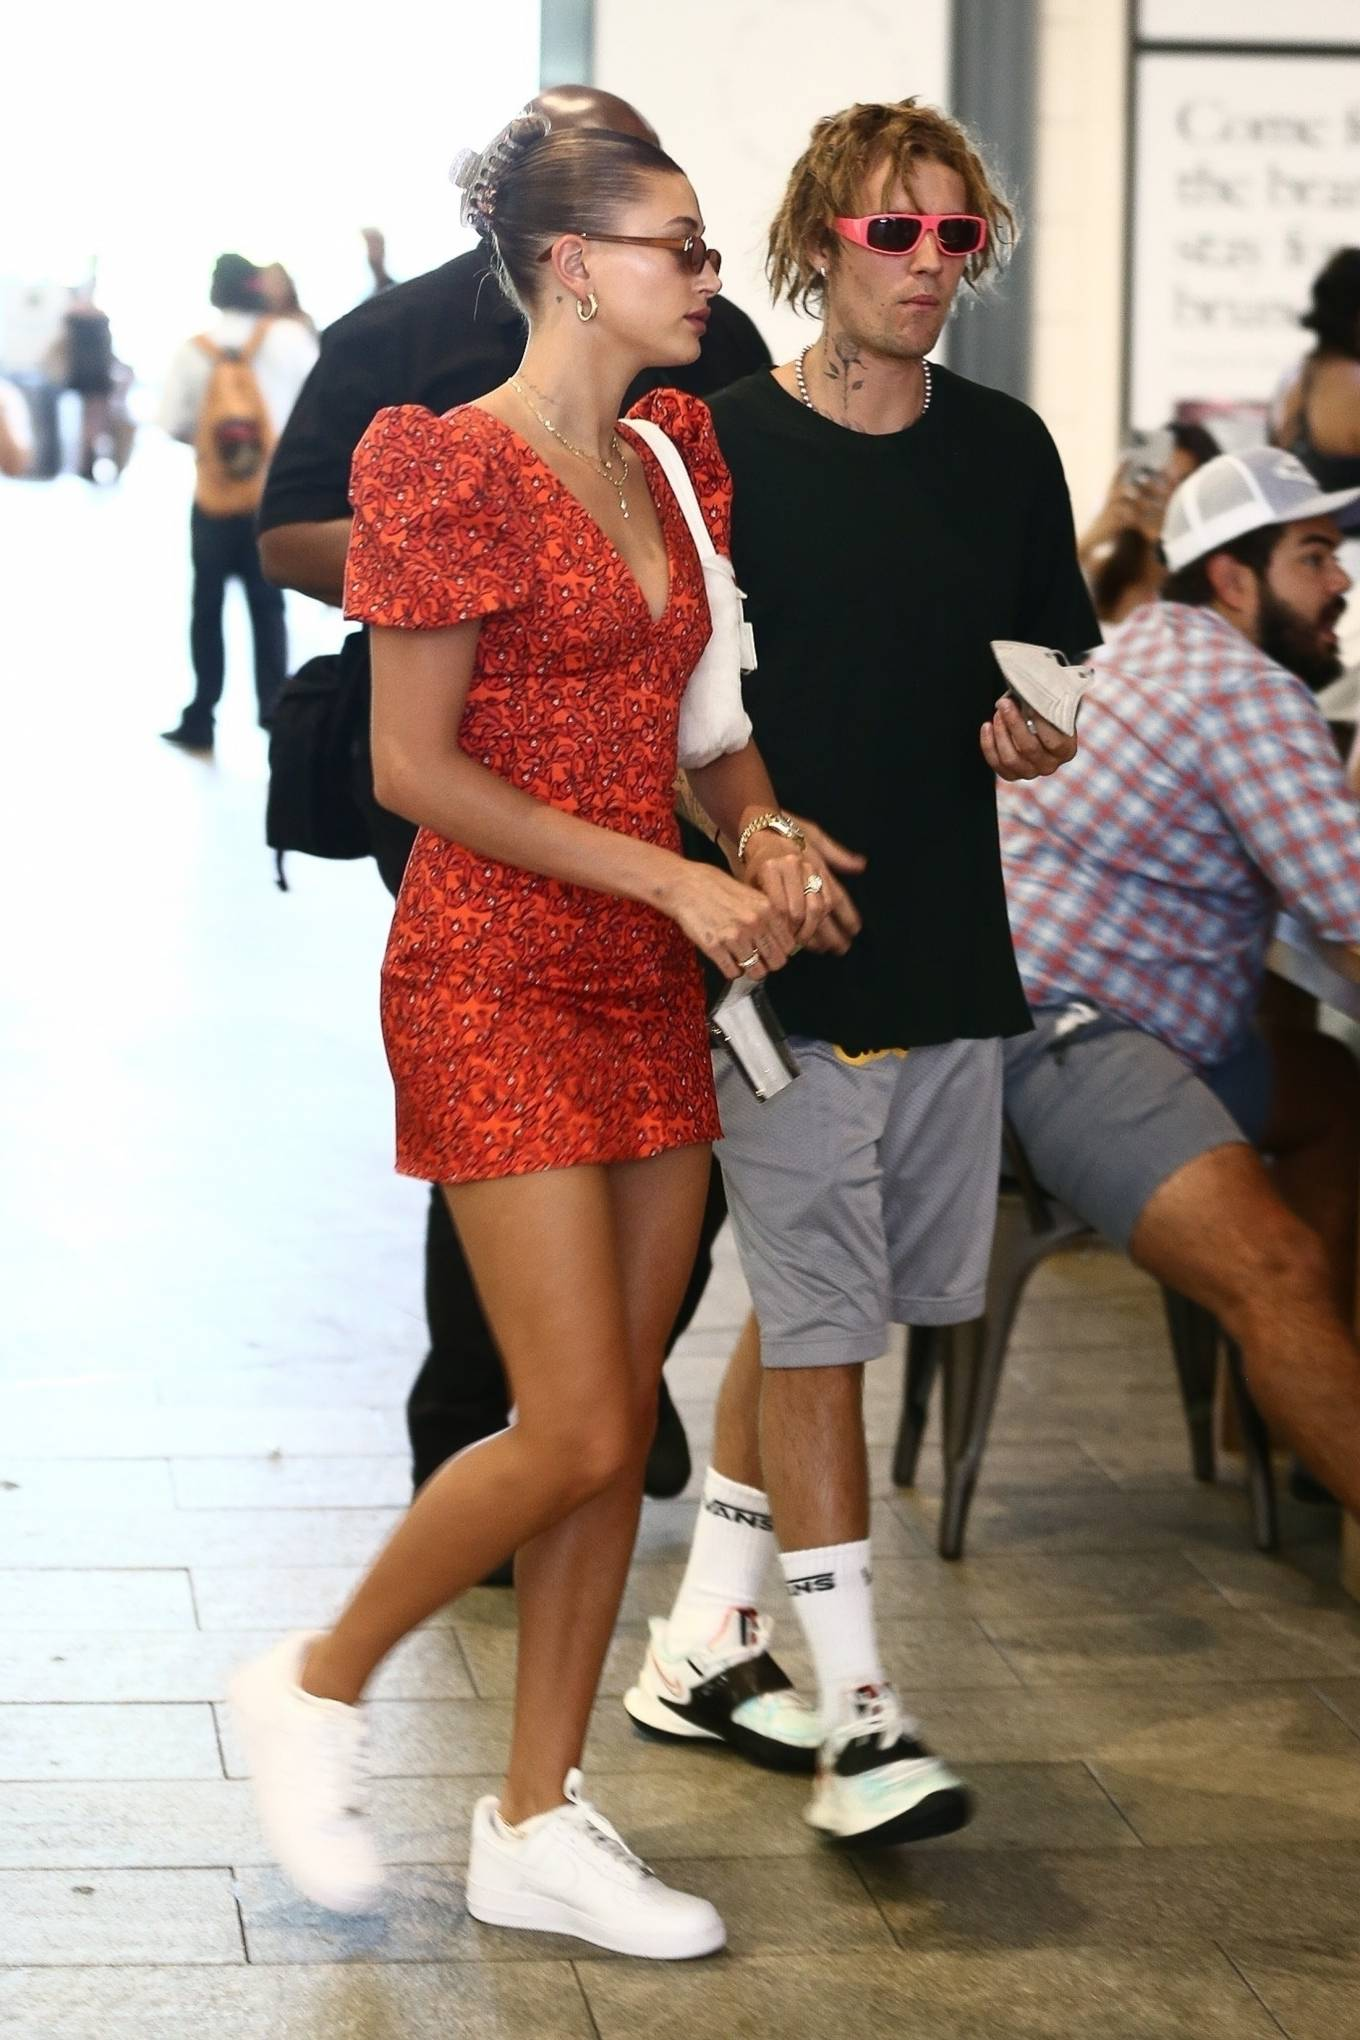 Hailey Baldwin wearing a fitted red dress with a cotton material, bell sleeves, floral print and a V-neck